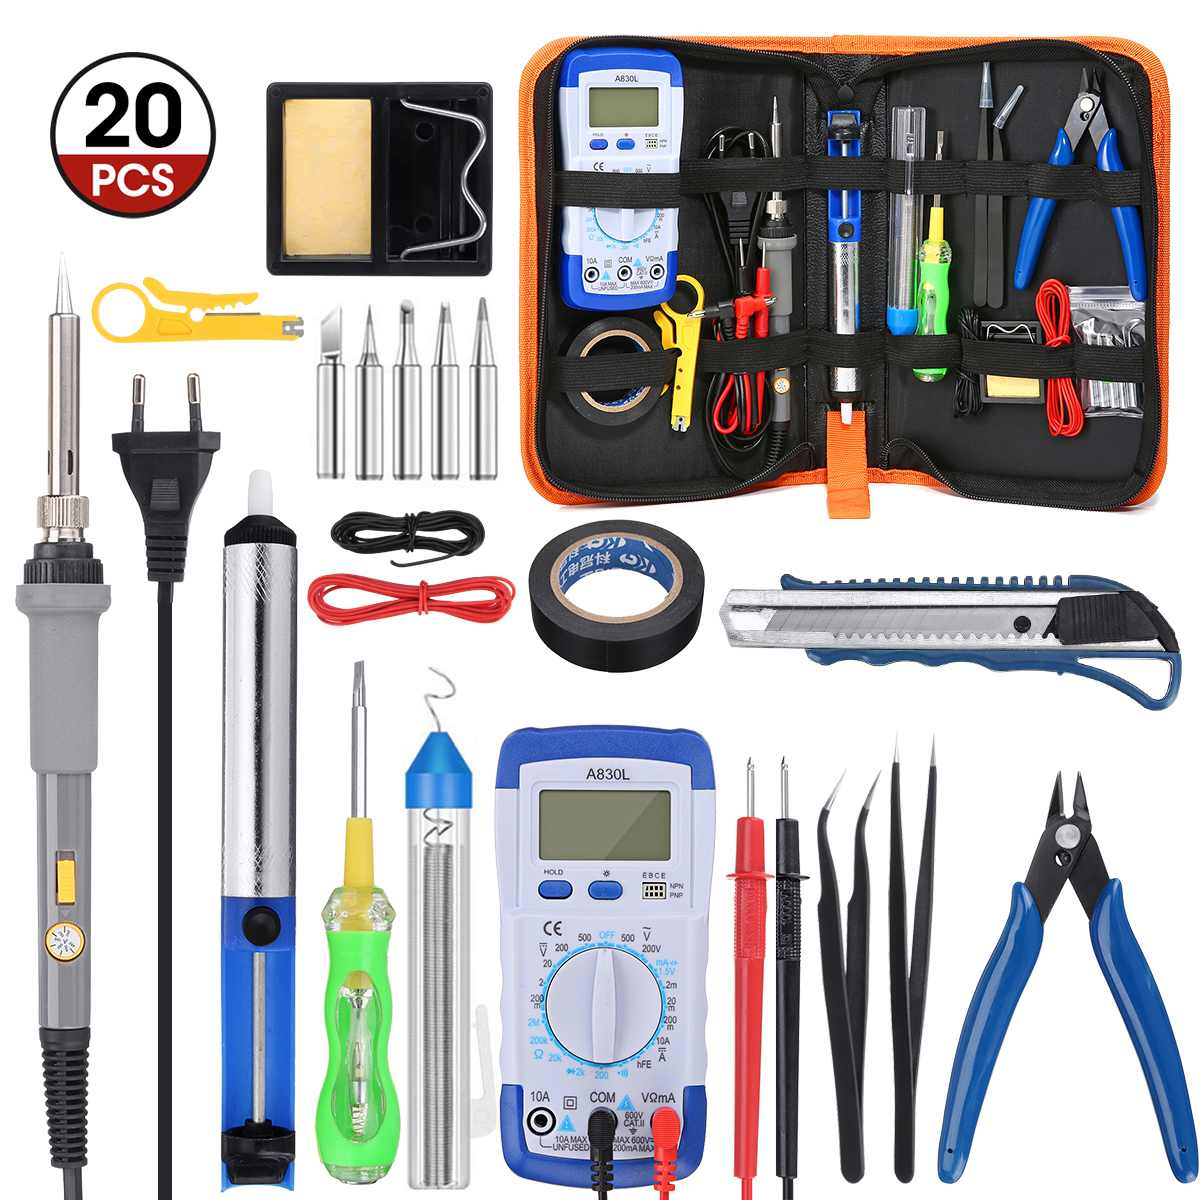 20pcs Soldering Iron 220V 110V 60W New Adjustable Temperature Electric Solder Iron Kit Rework Station Heat Pencil Repair Tool